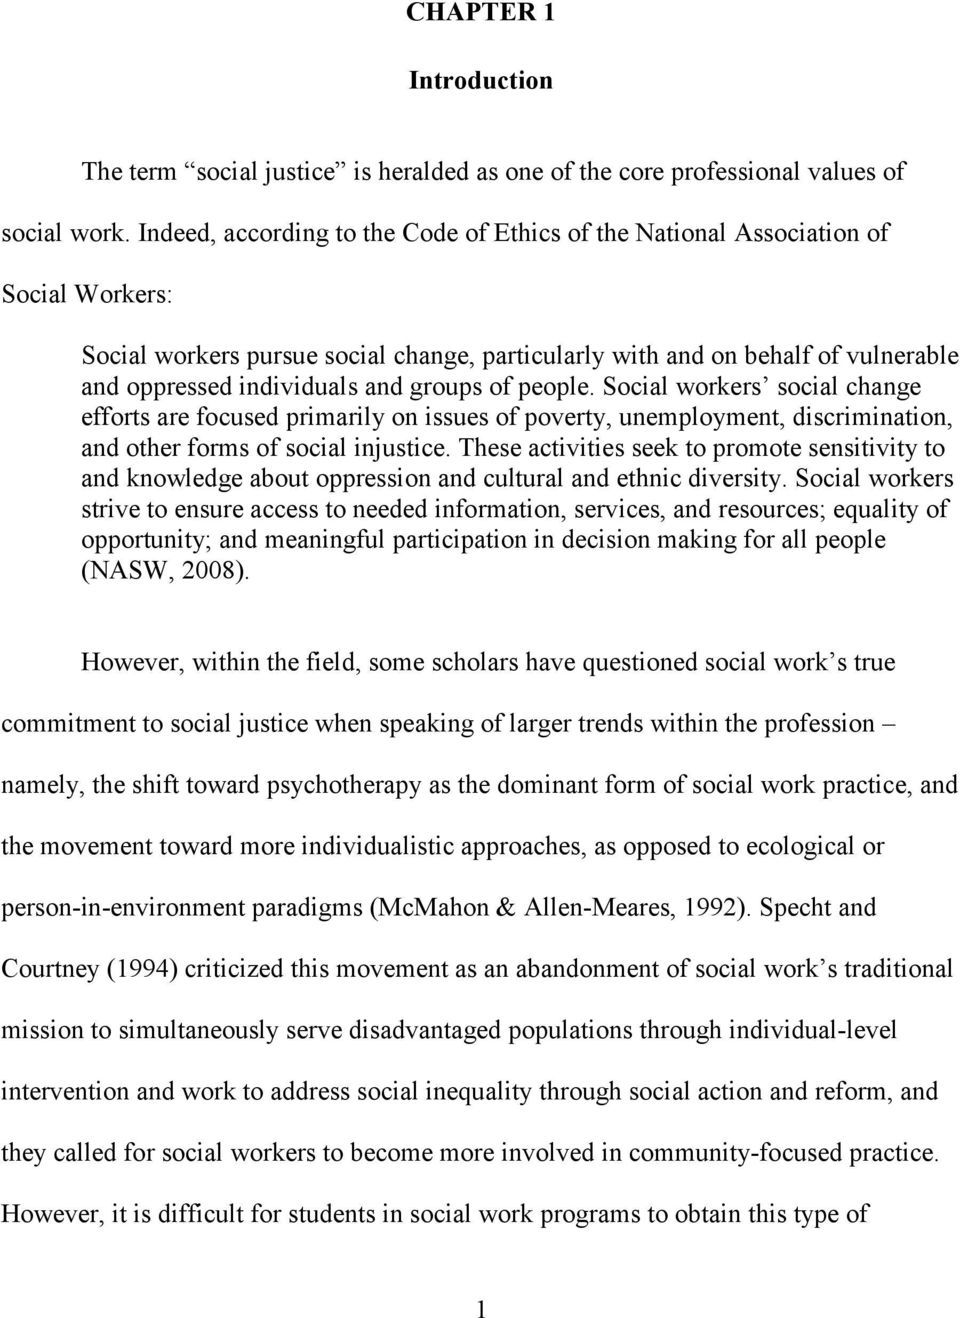 groups of people. Social workers social change efforts are focused primarily on issues of poverty, unemployment, discrimination, and other forms of social injustice.